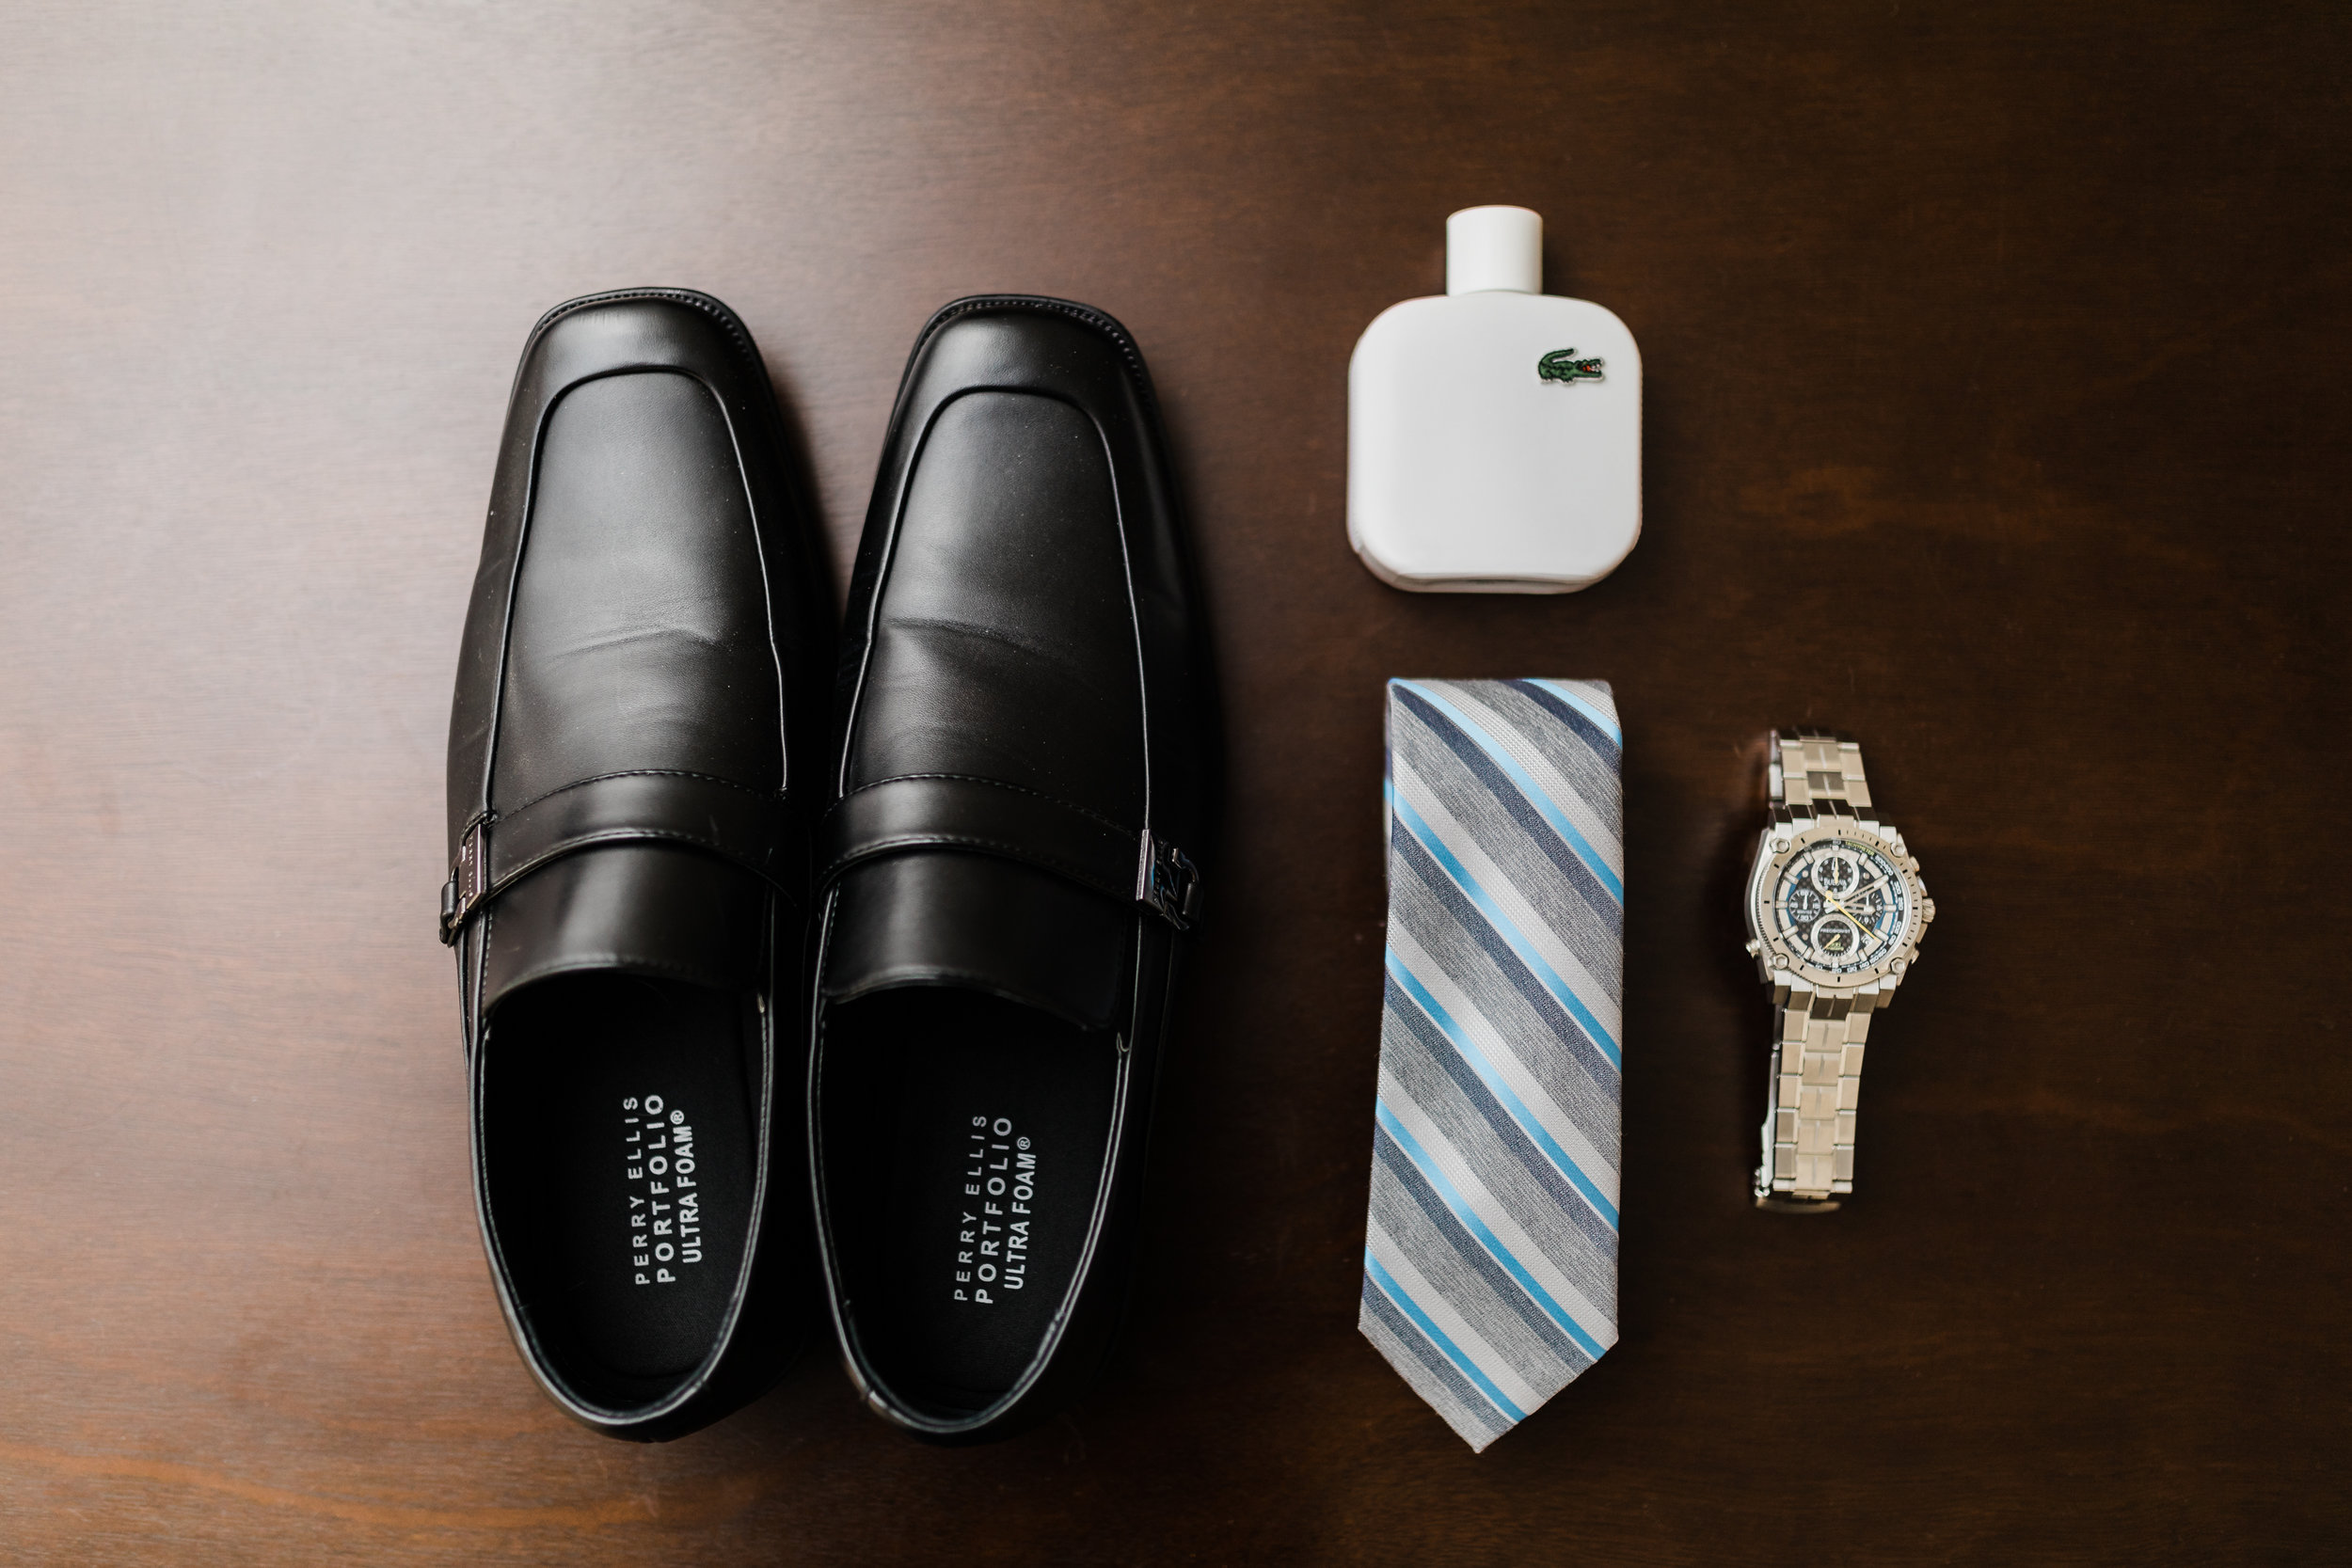 Groom details - watch, cologne, tie, and shoes for Maryland winter wedding